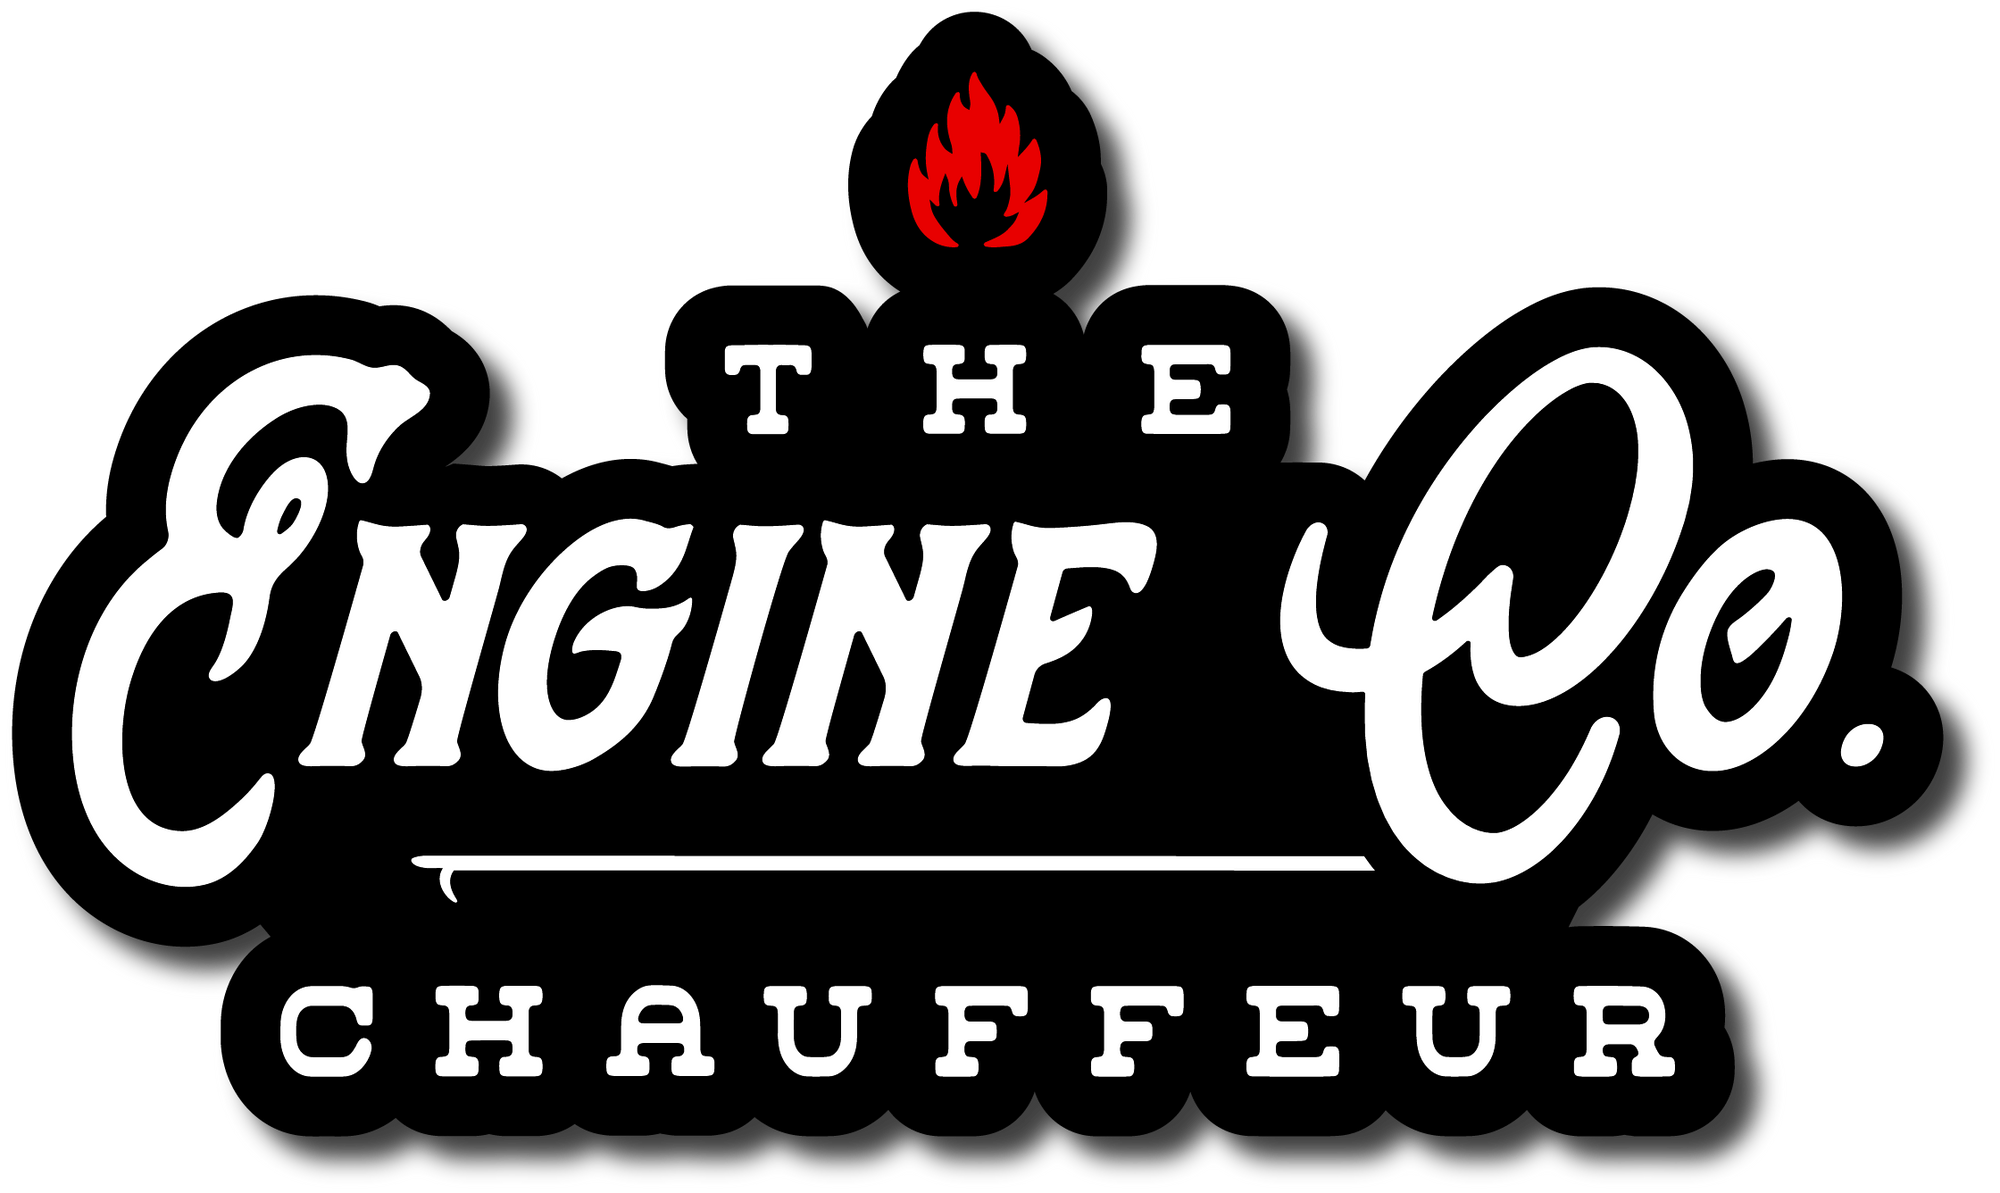 H.C. Engine Co. Chauff Decal